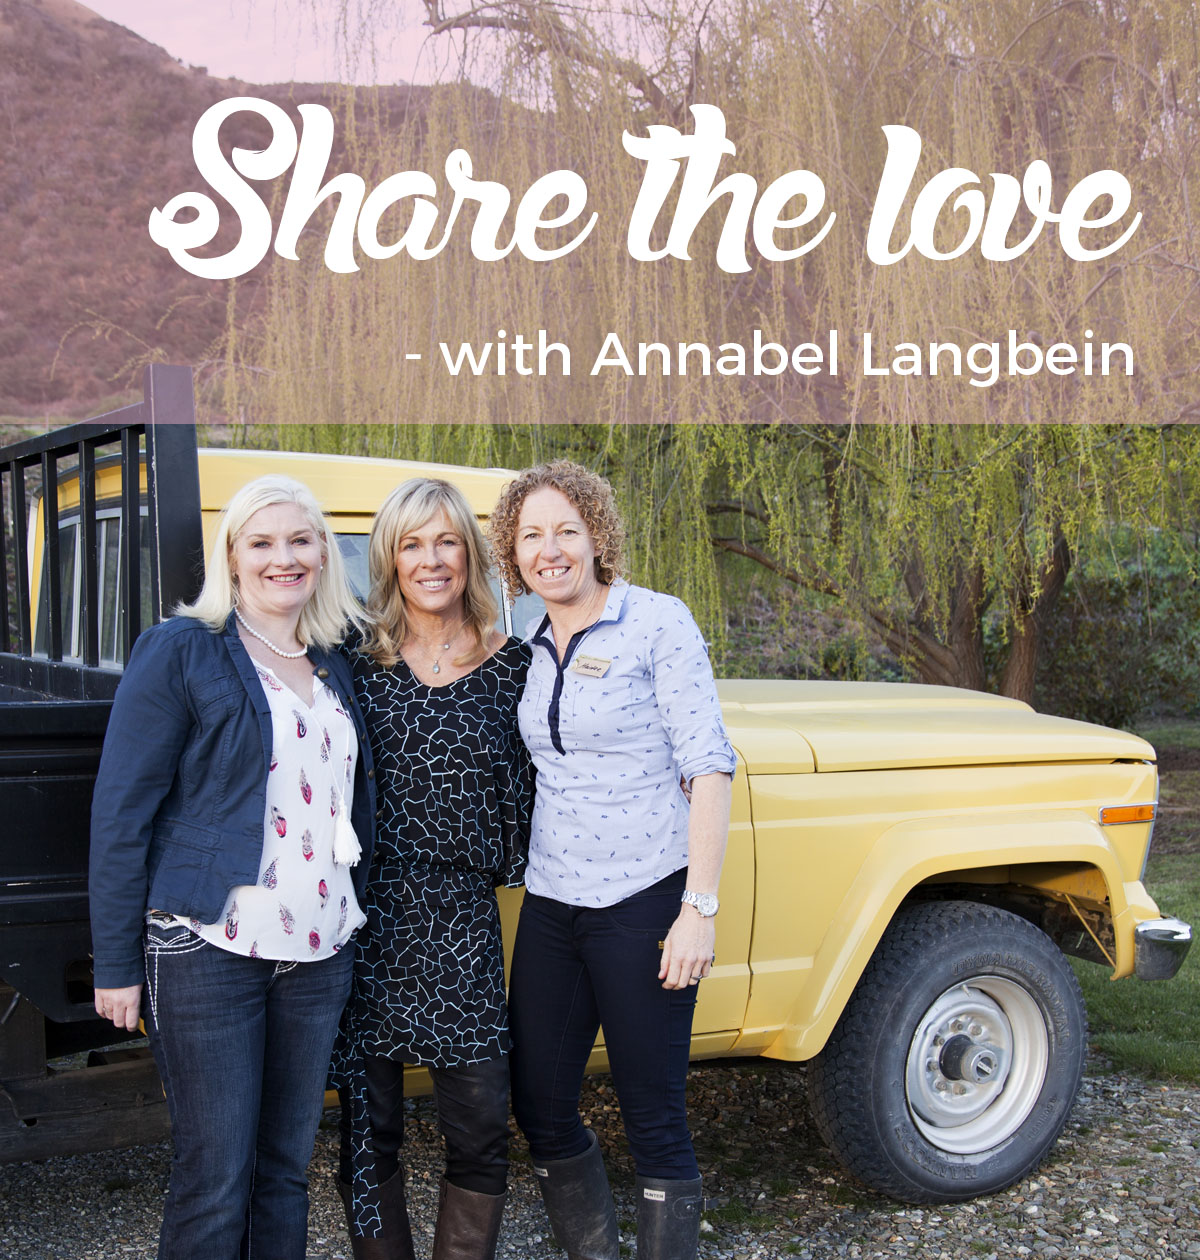 Share The Love experience with Annabel Langbein